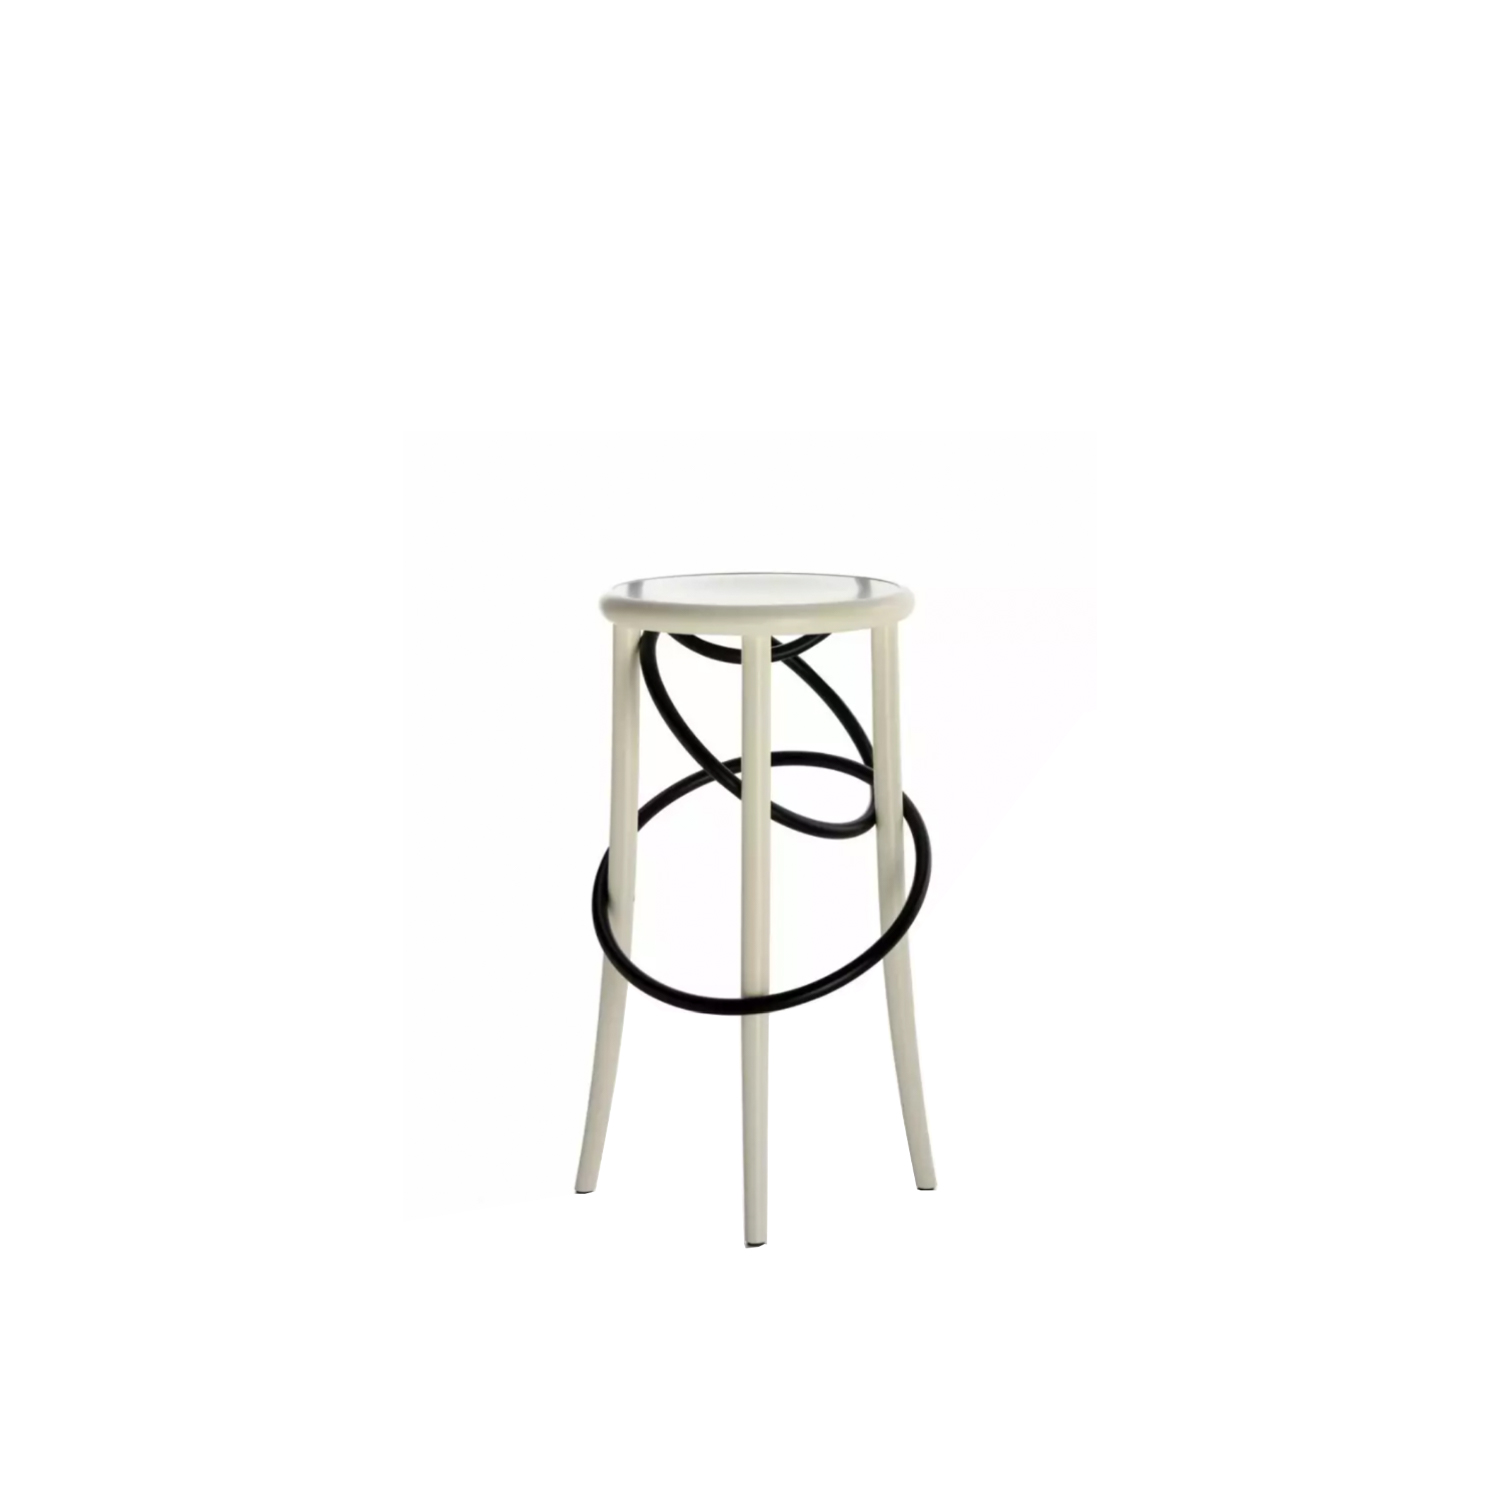 Cirque One Tone Stool - The light and playful circus theme is at the core of the Cirque family of stools designed by Martino Gamper for Wiener GTV Design. The bent element, which is the brand's signature trait, is surprisingly and unexpectedly inserted in the base of the stool, forming the outline of the seat in the form of a chain comprising two or three wooden rings that loop around the full length of the stool legs. This striking styling effect blends in seamlessly with the functionality of the seat, which is available in two heights: a tall, sleek stool with or without backrest, Cirque L and Cirque M, and the stable and well-proportioned low stool, Cirque S.